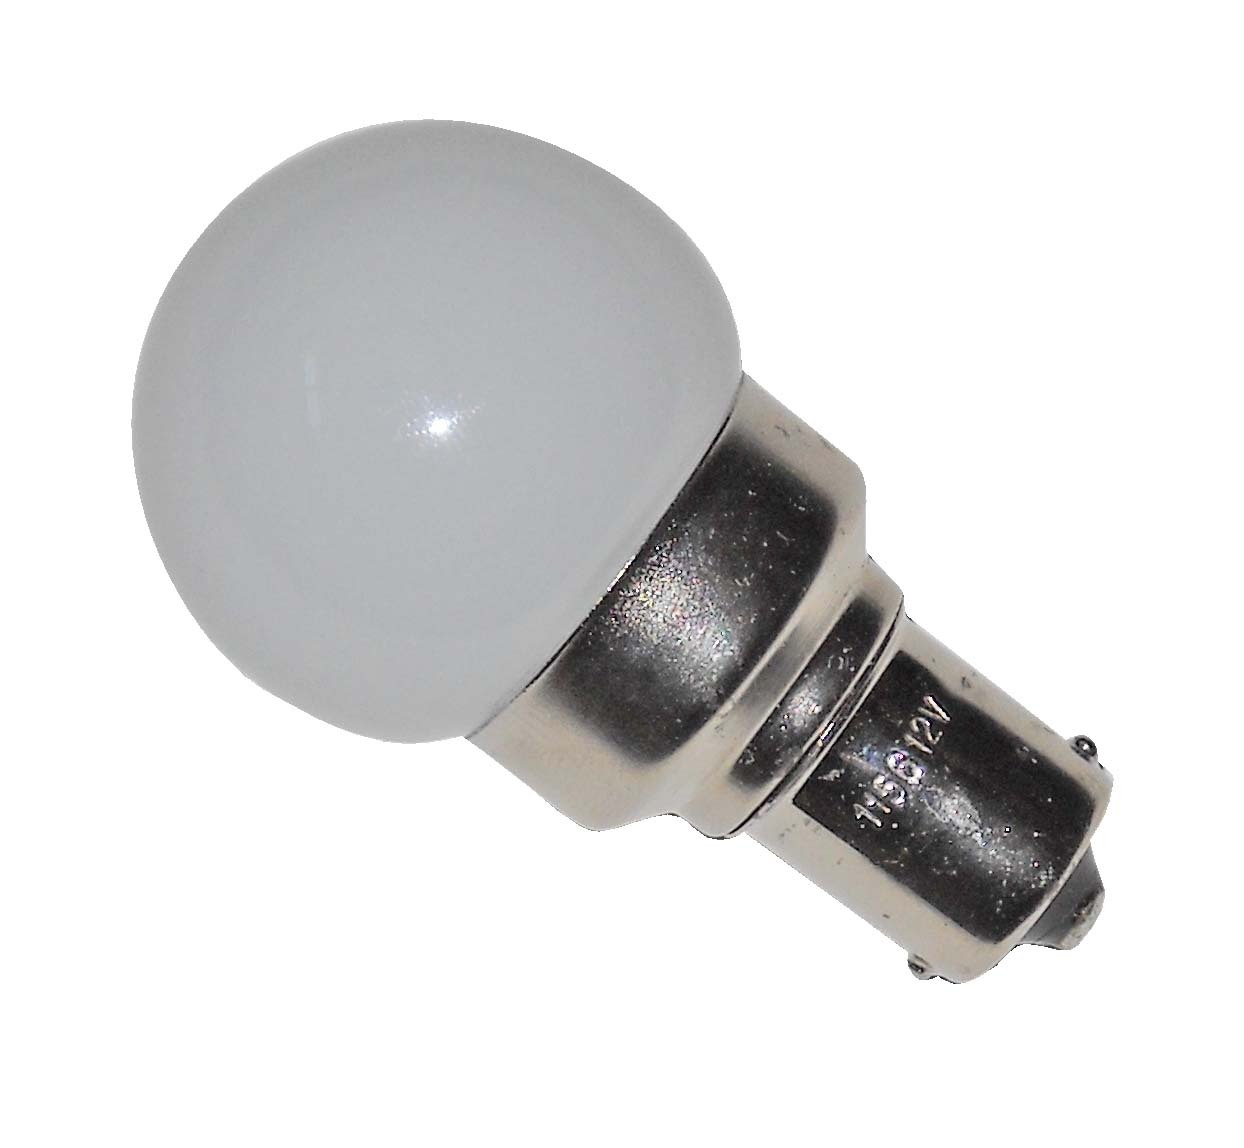 1 Watt LED Bulb Replacement for 20-99 52615